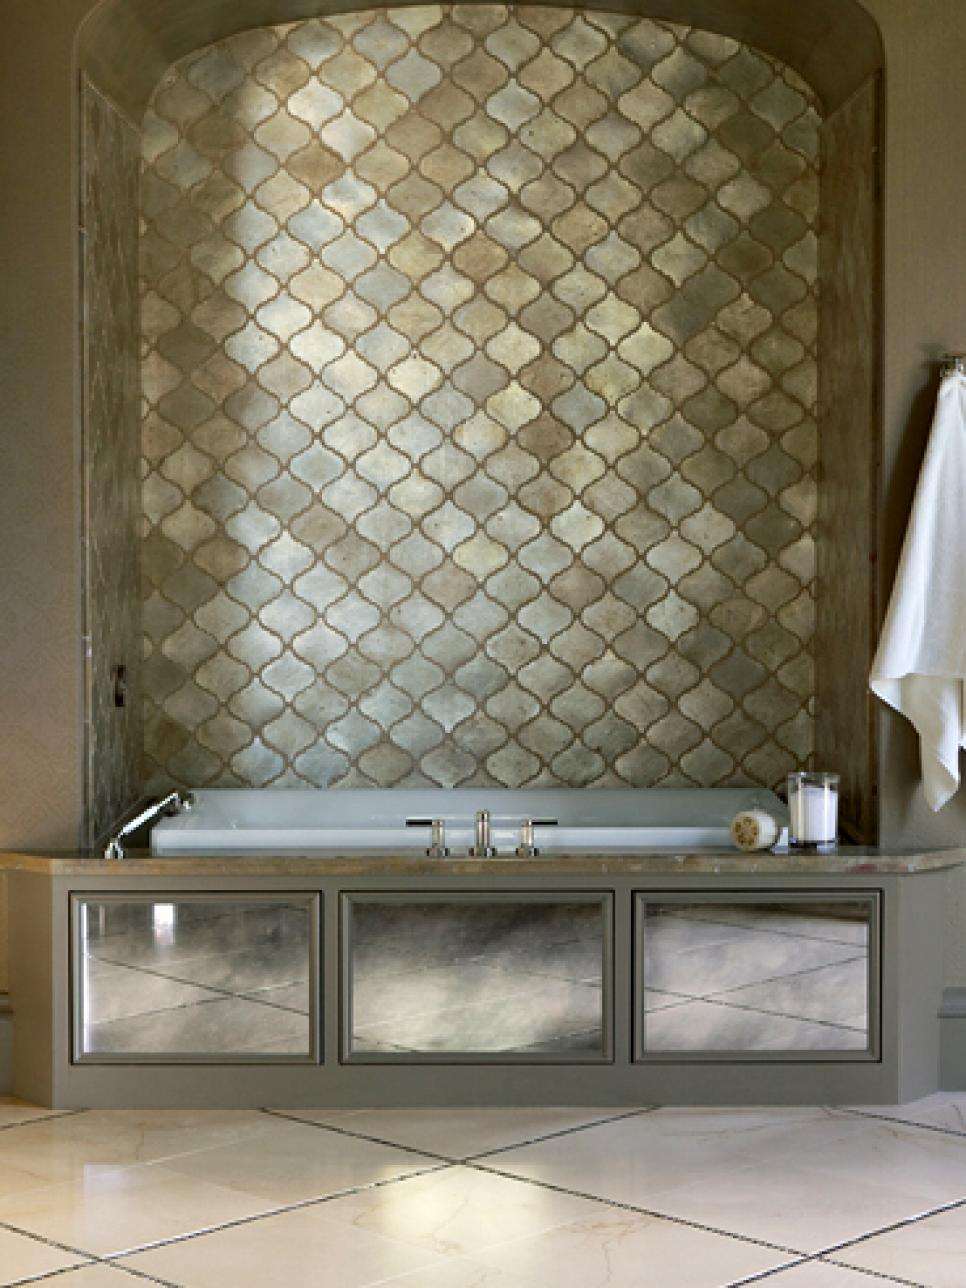 Bathroom Remodel Tile Shower 10 best bathroom remodeling trends | bath crashers | diy